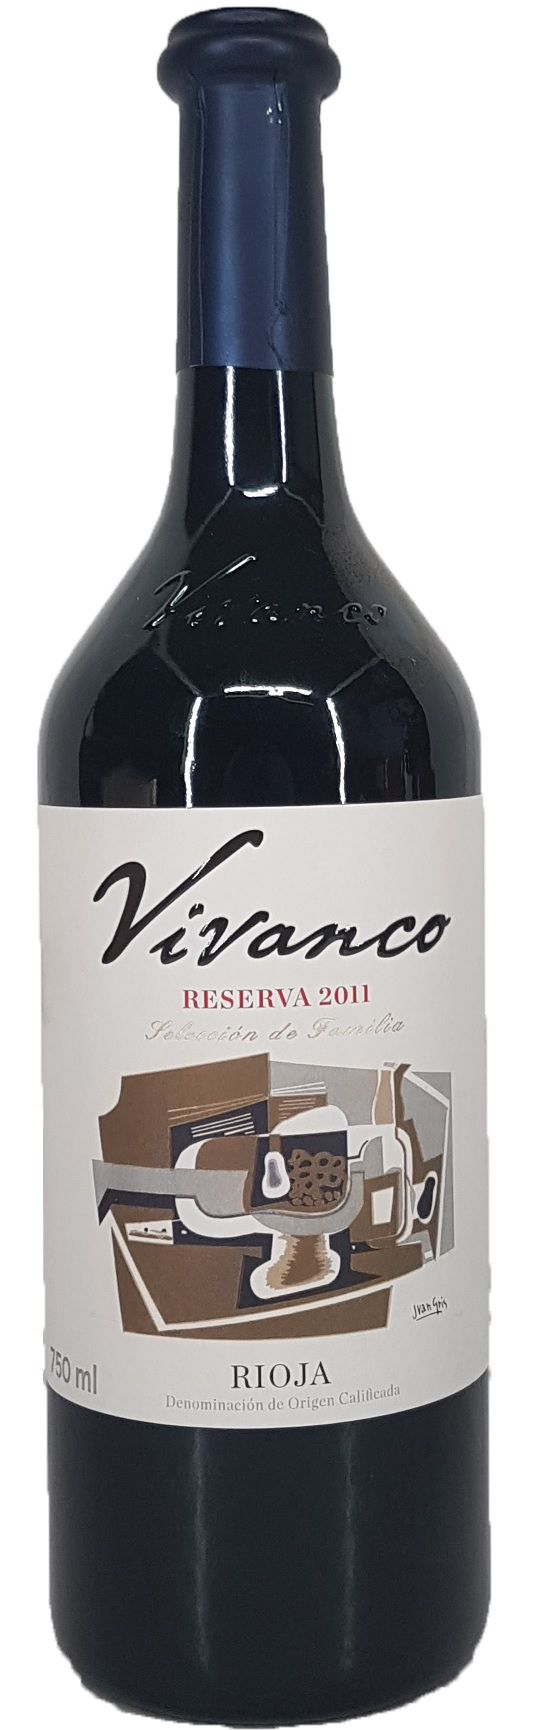 Vinho Tinto Vivanco Reserva Rioja - 750ml -